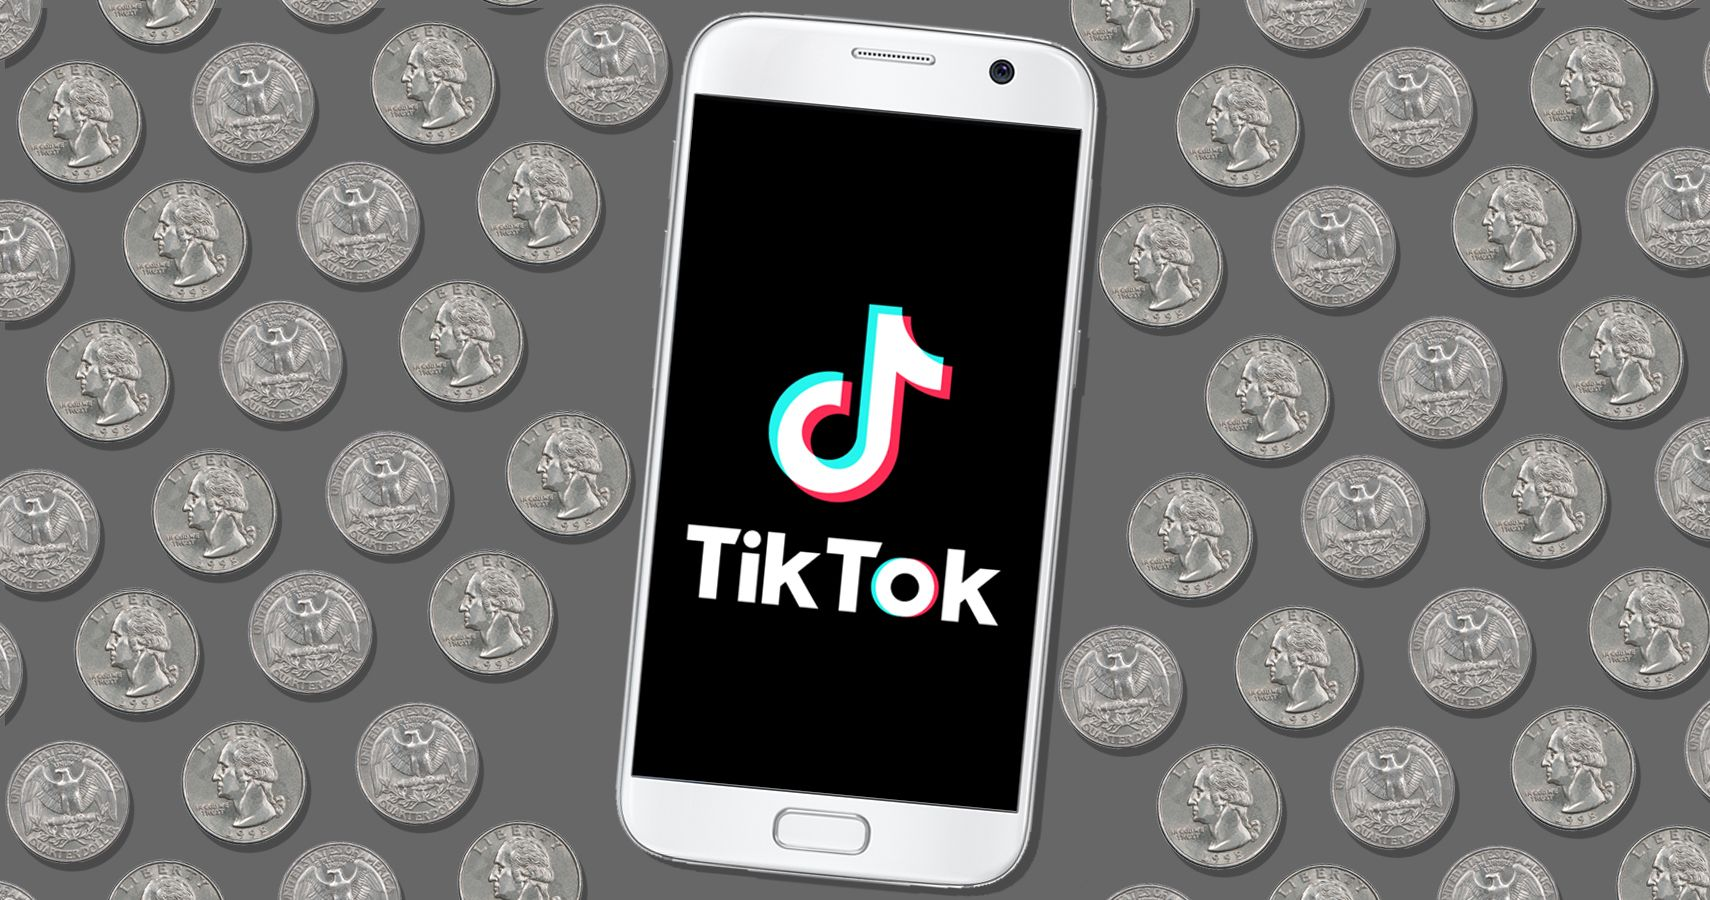 8-Year-Old Girl Hospitalized After Trying Viral TikTok Magic Trick